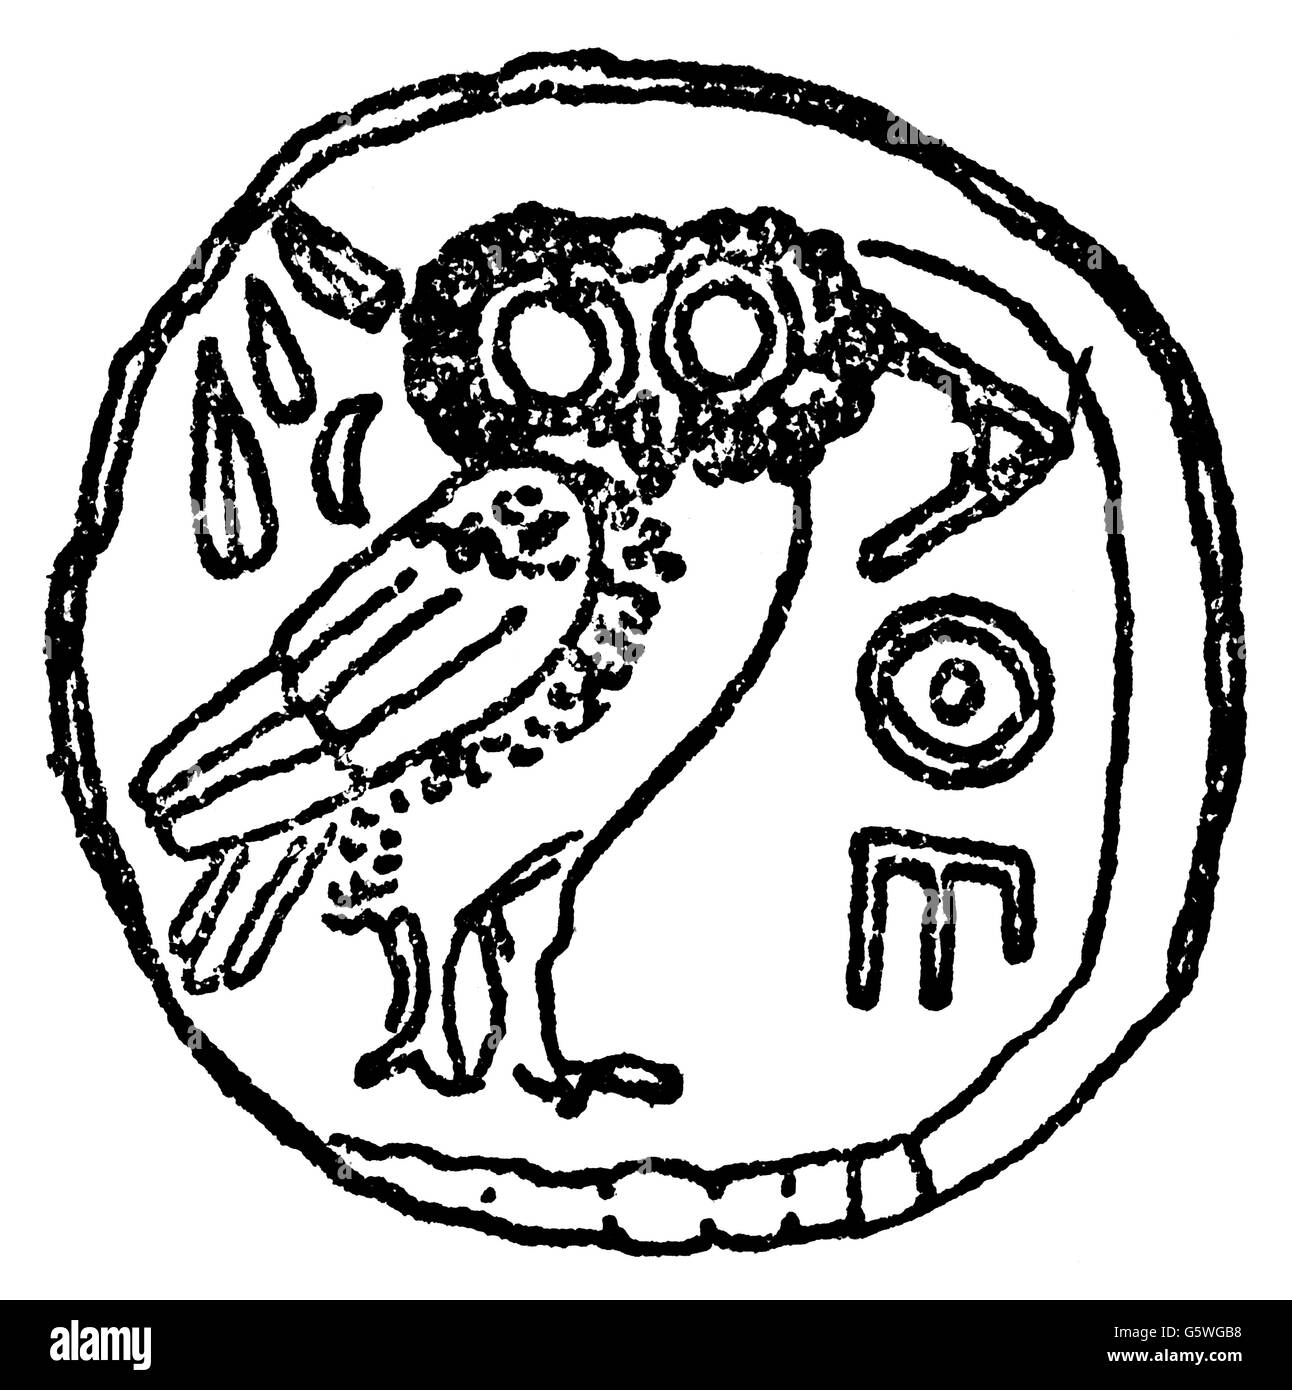 money / finances, coins, ancient world, Greece, tetradrachm, Athens, 5th century BC, drawing, 20th century, ancient - Stock Image